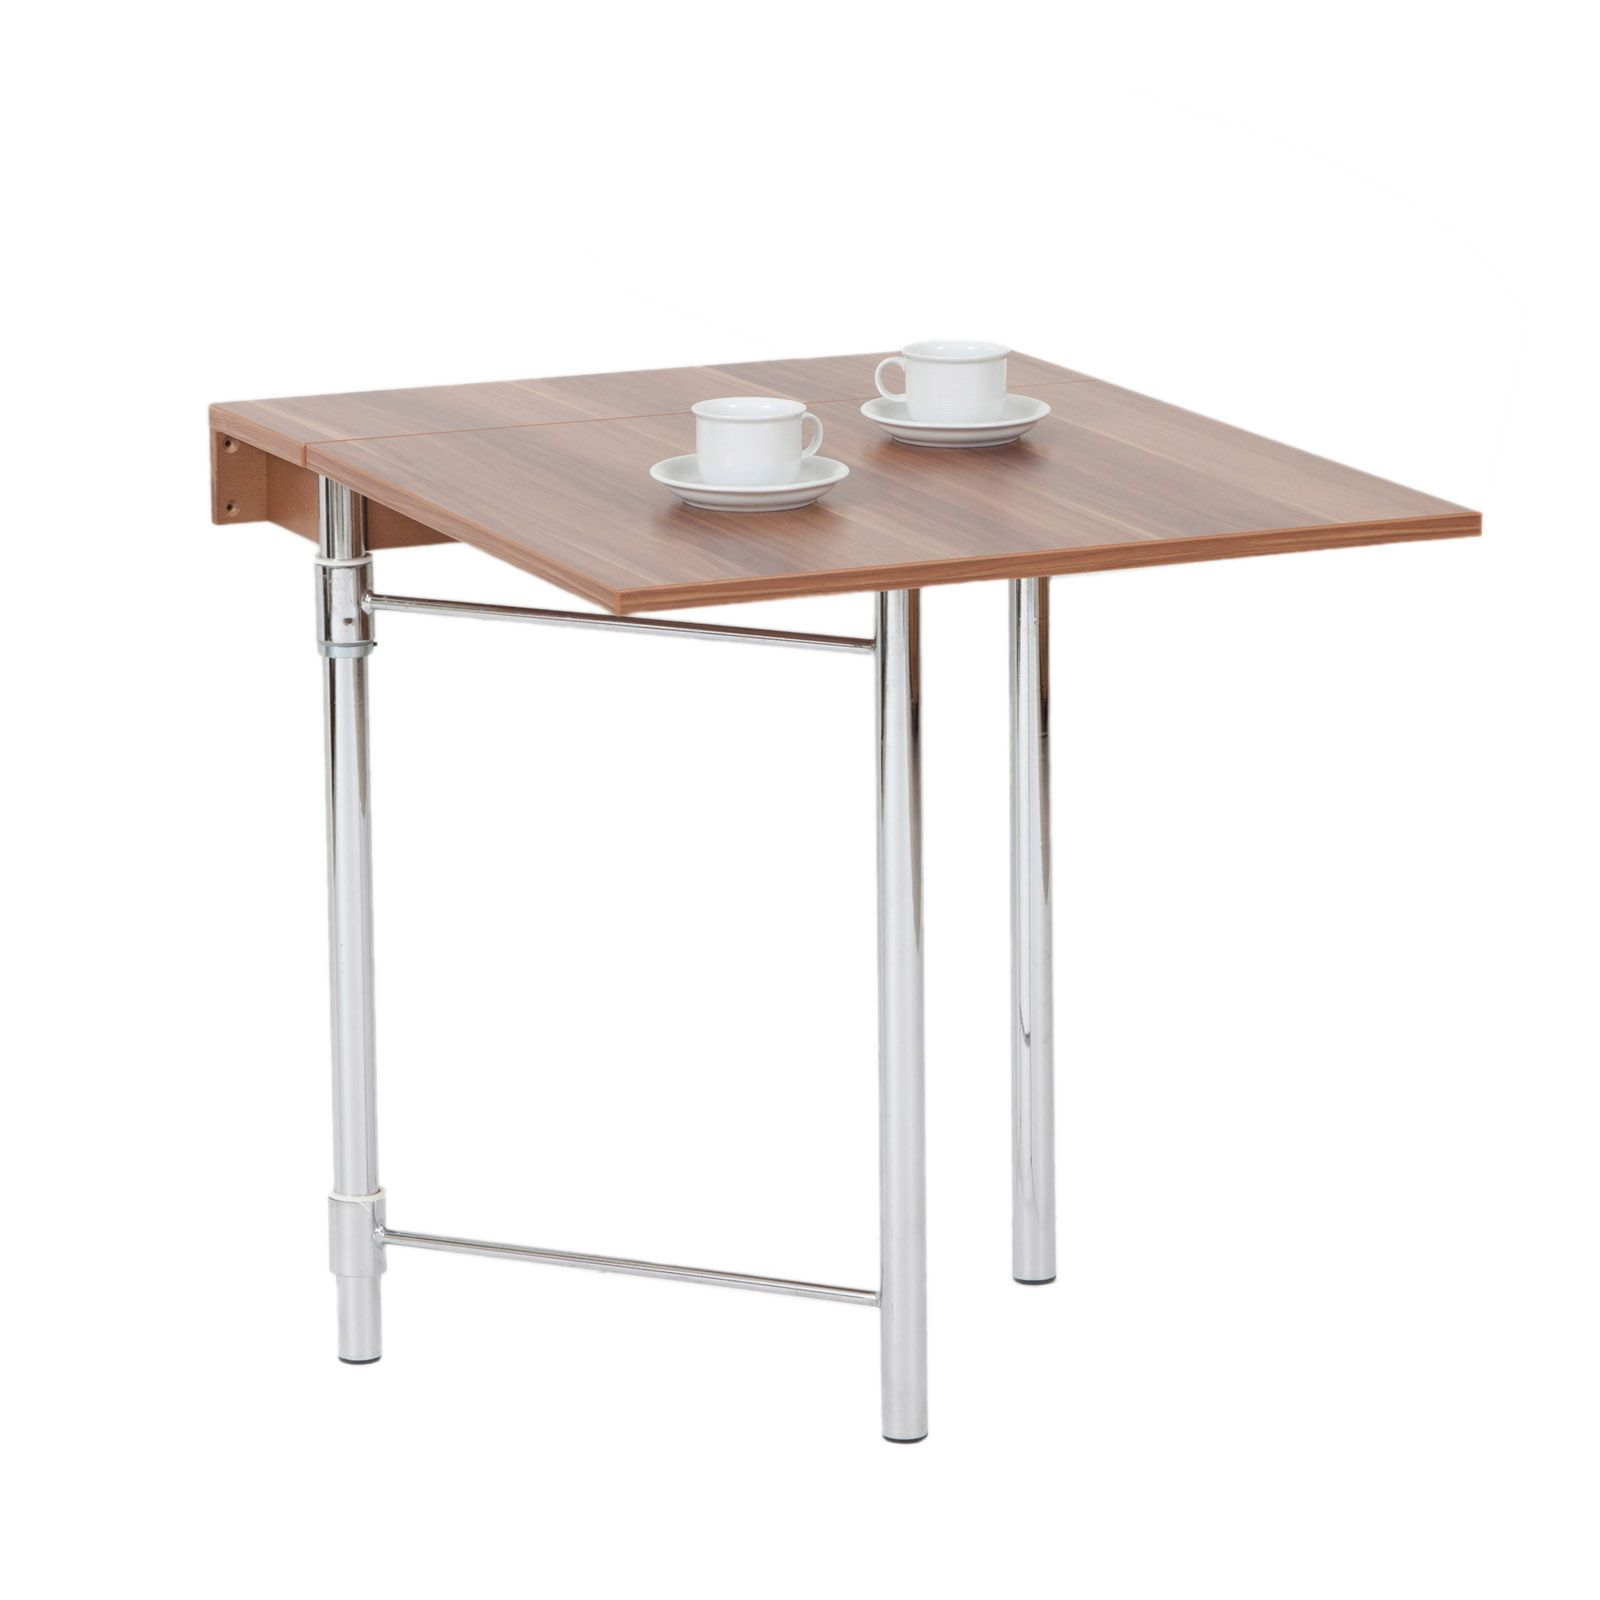 Table pliante murale great design table cuisine nolte for Table a manger murale